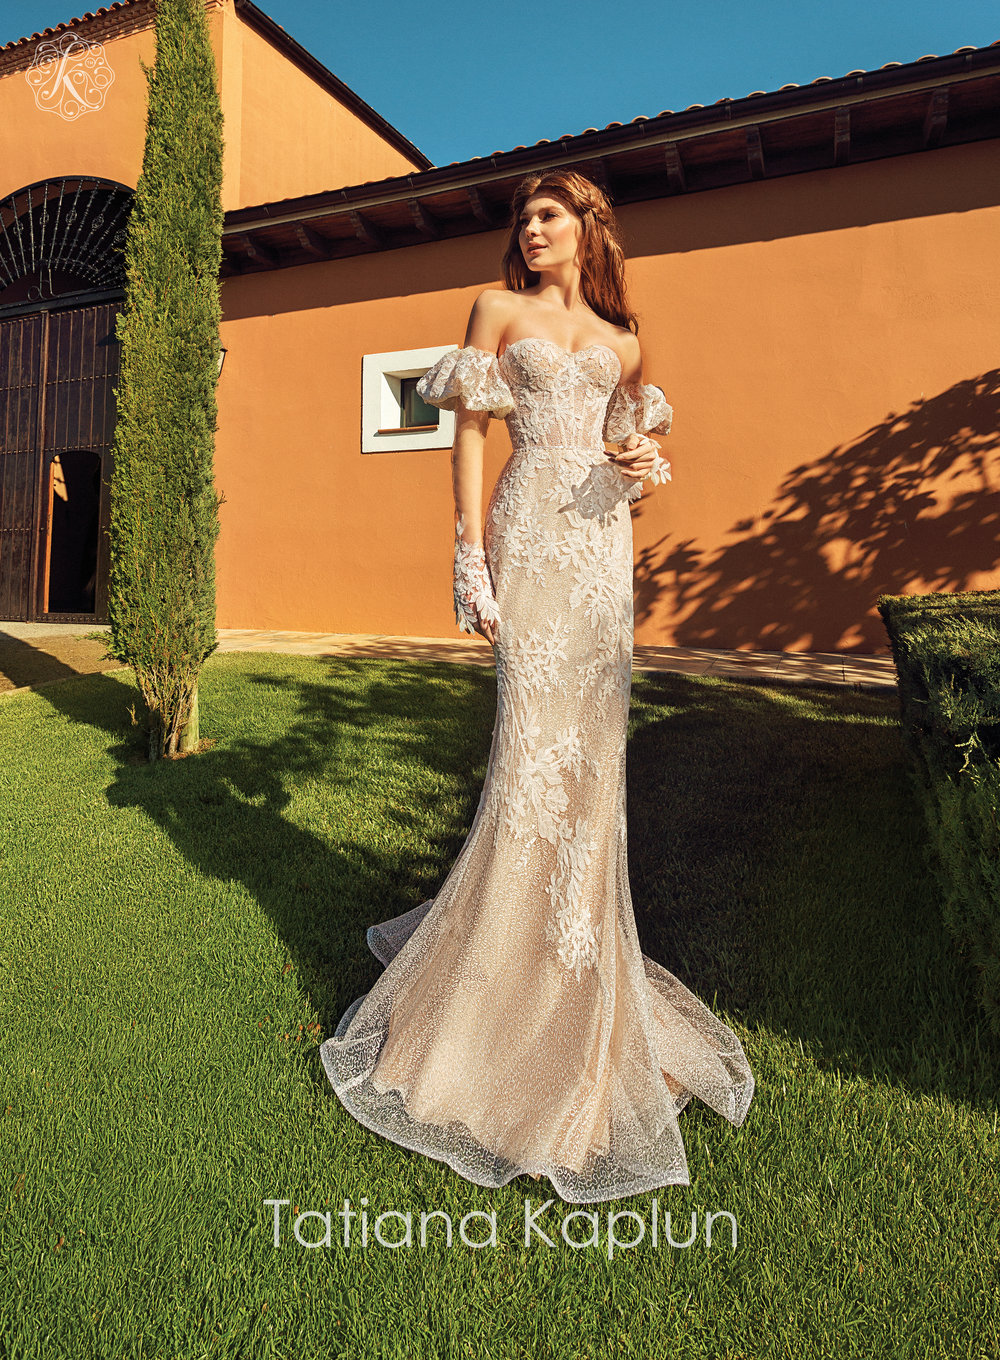 VIANA wedding dress by Tatiana Mukha